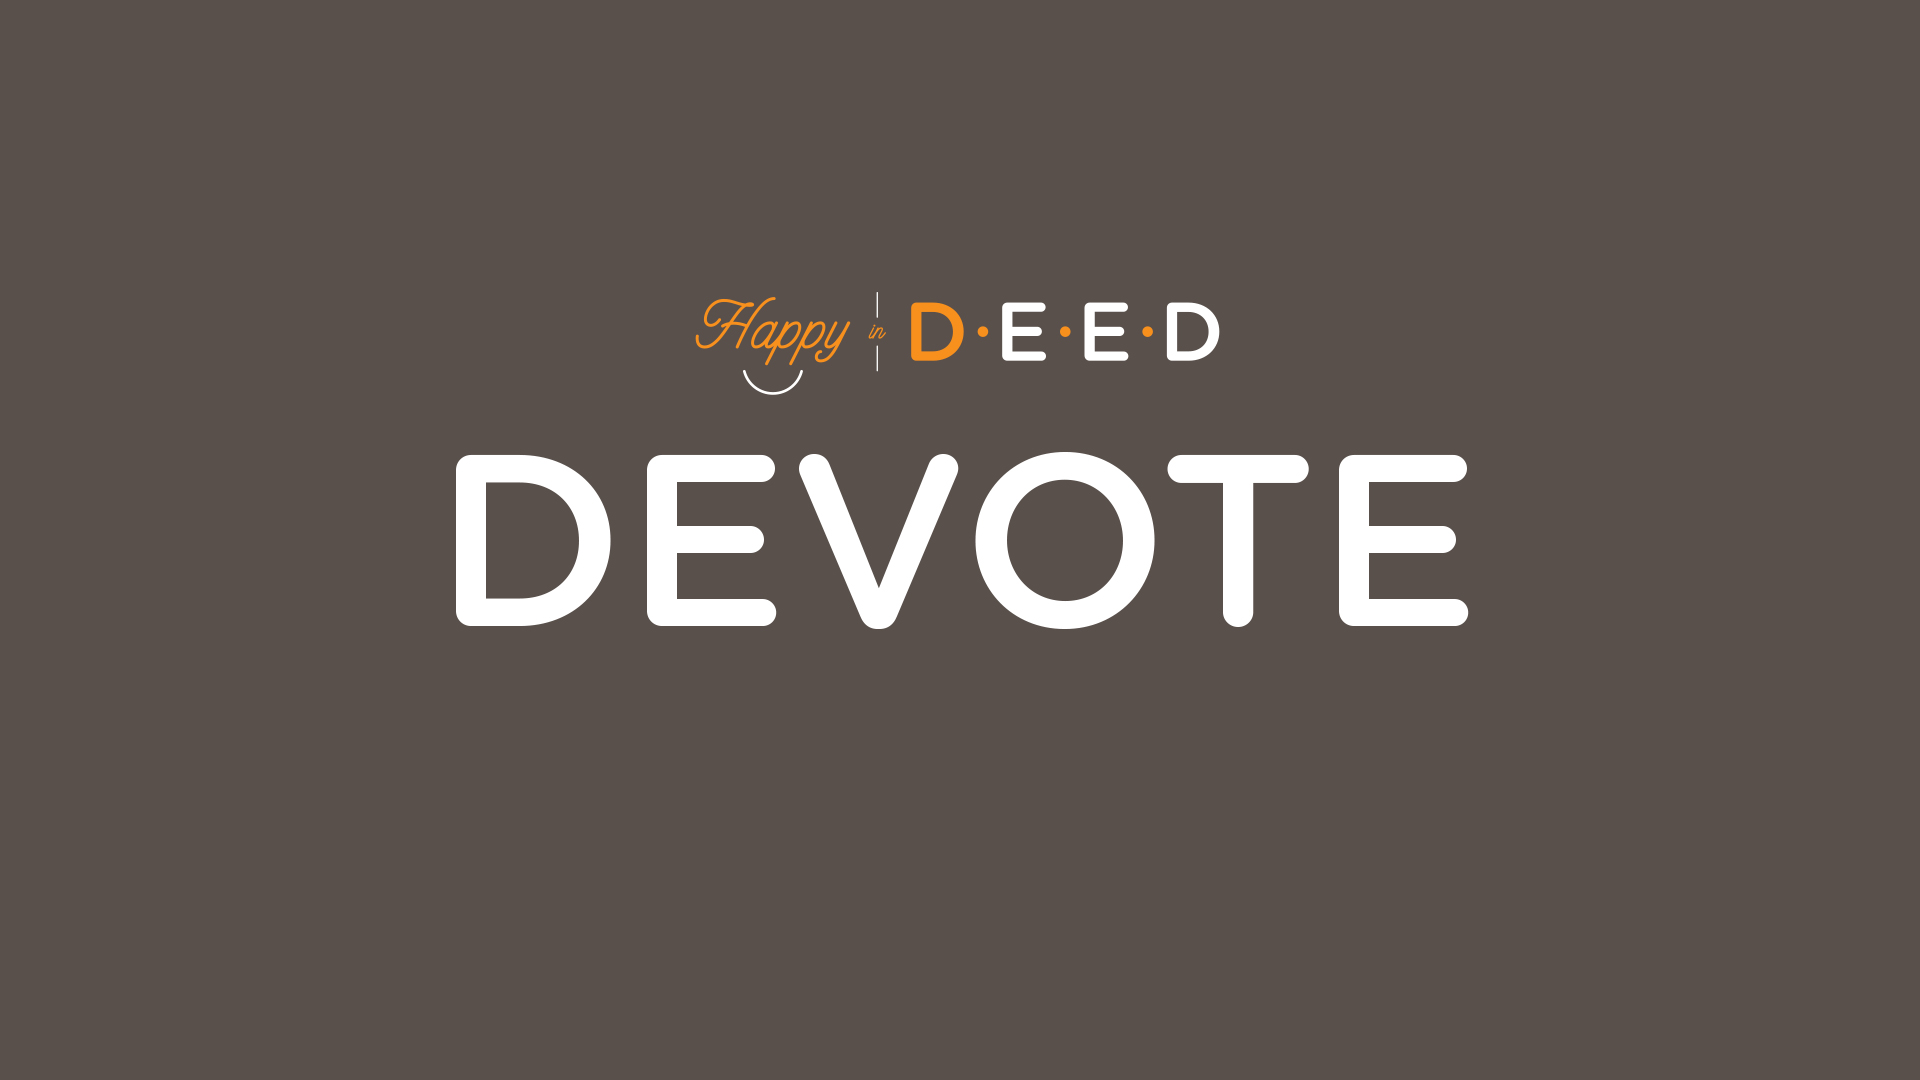 Happy-In-Deed-1Devote-clay